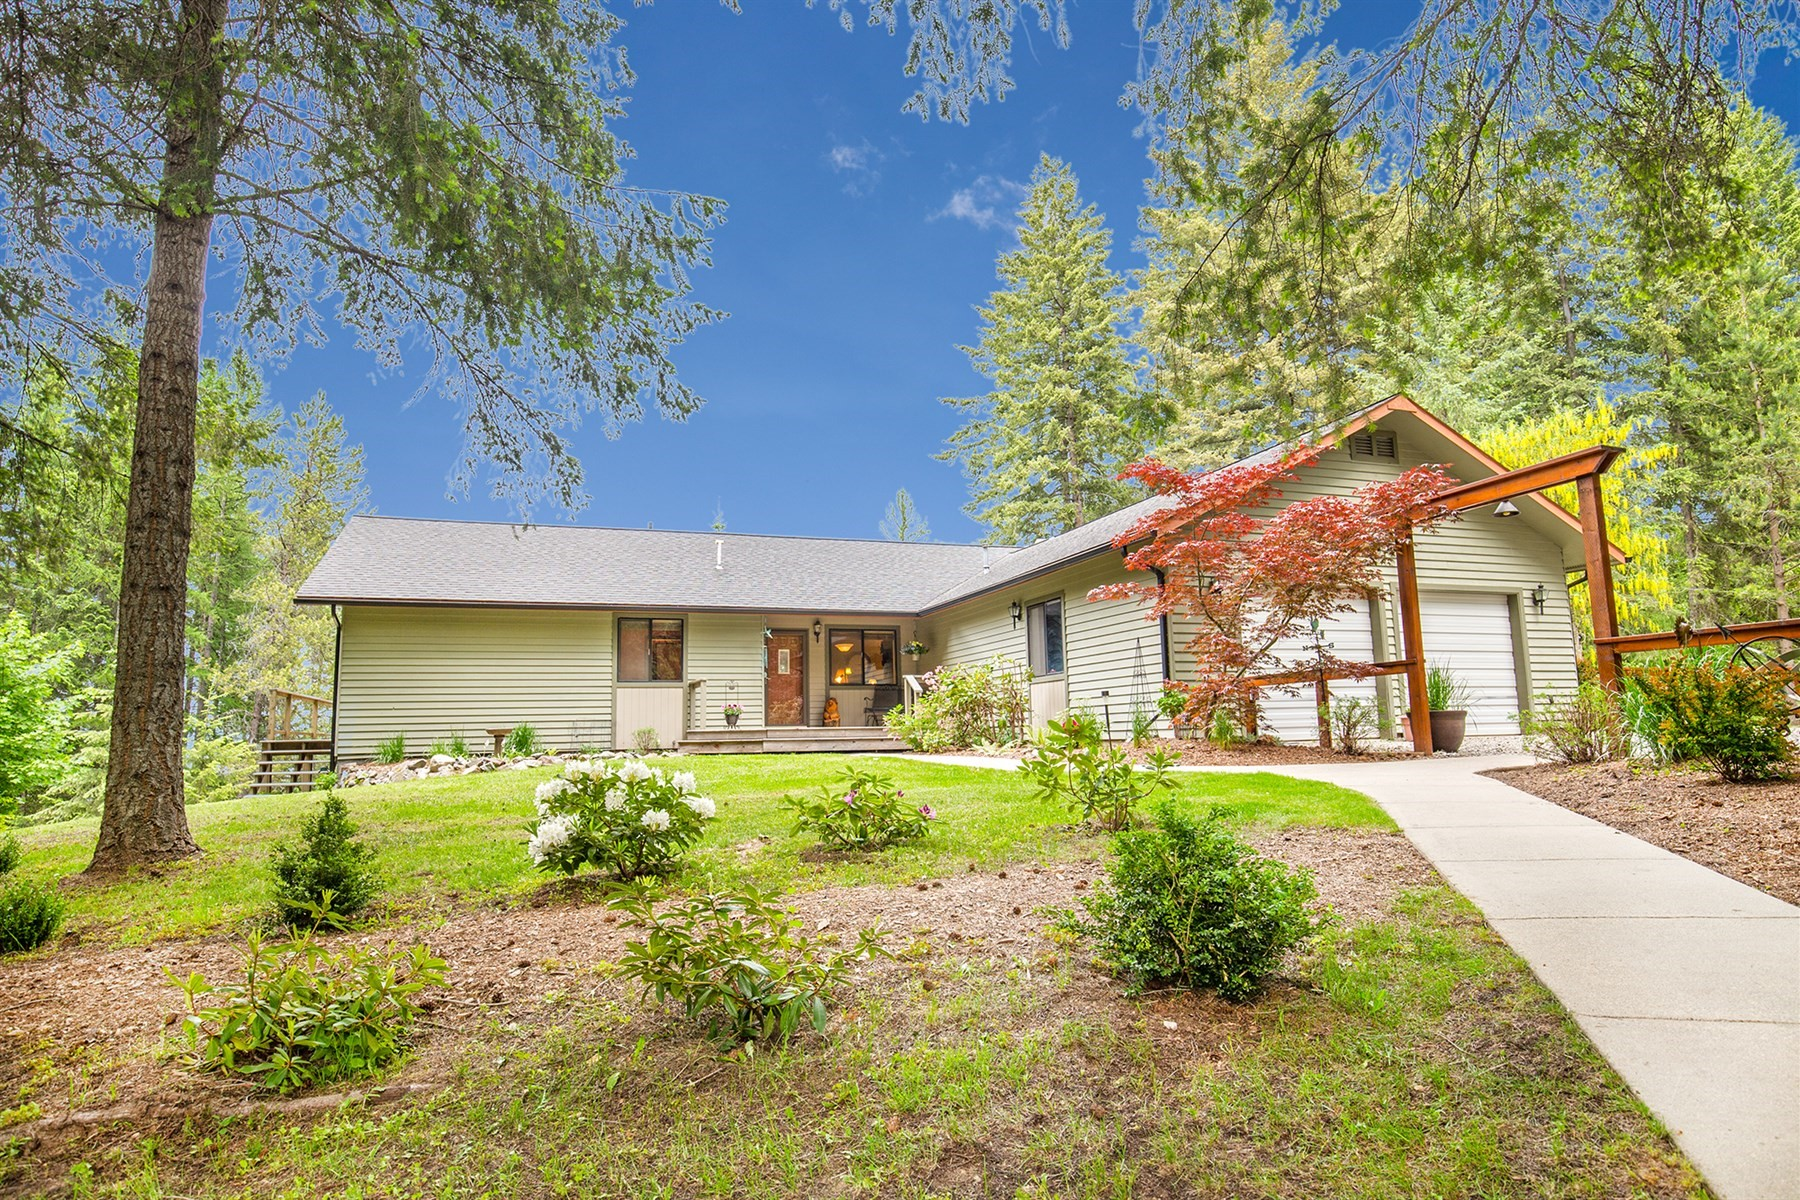 Single Family Home for Active at Sourdough Home w/ Shop on 2.7 Acres 611 Gold Hill Sagle, Idaho 83860 United States